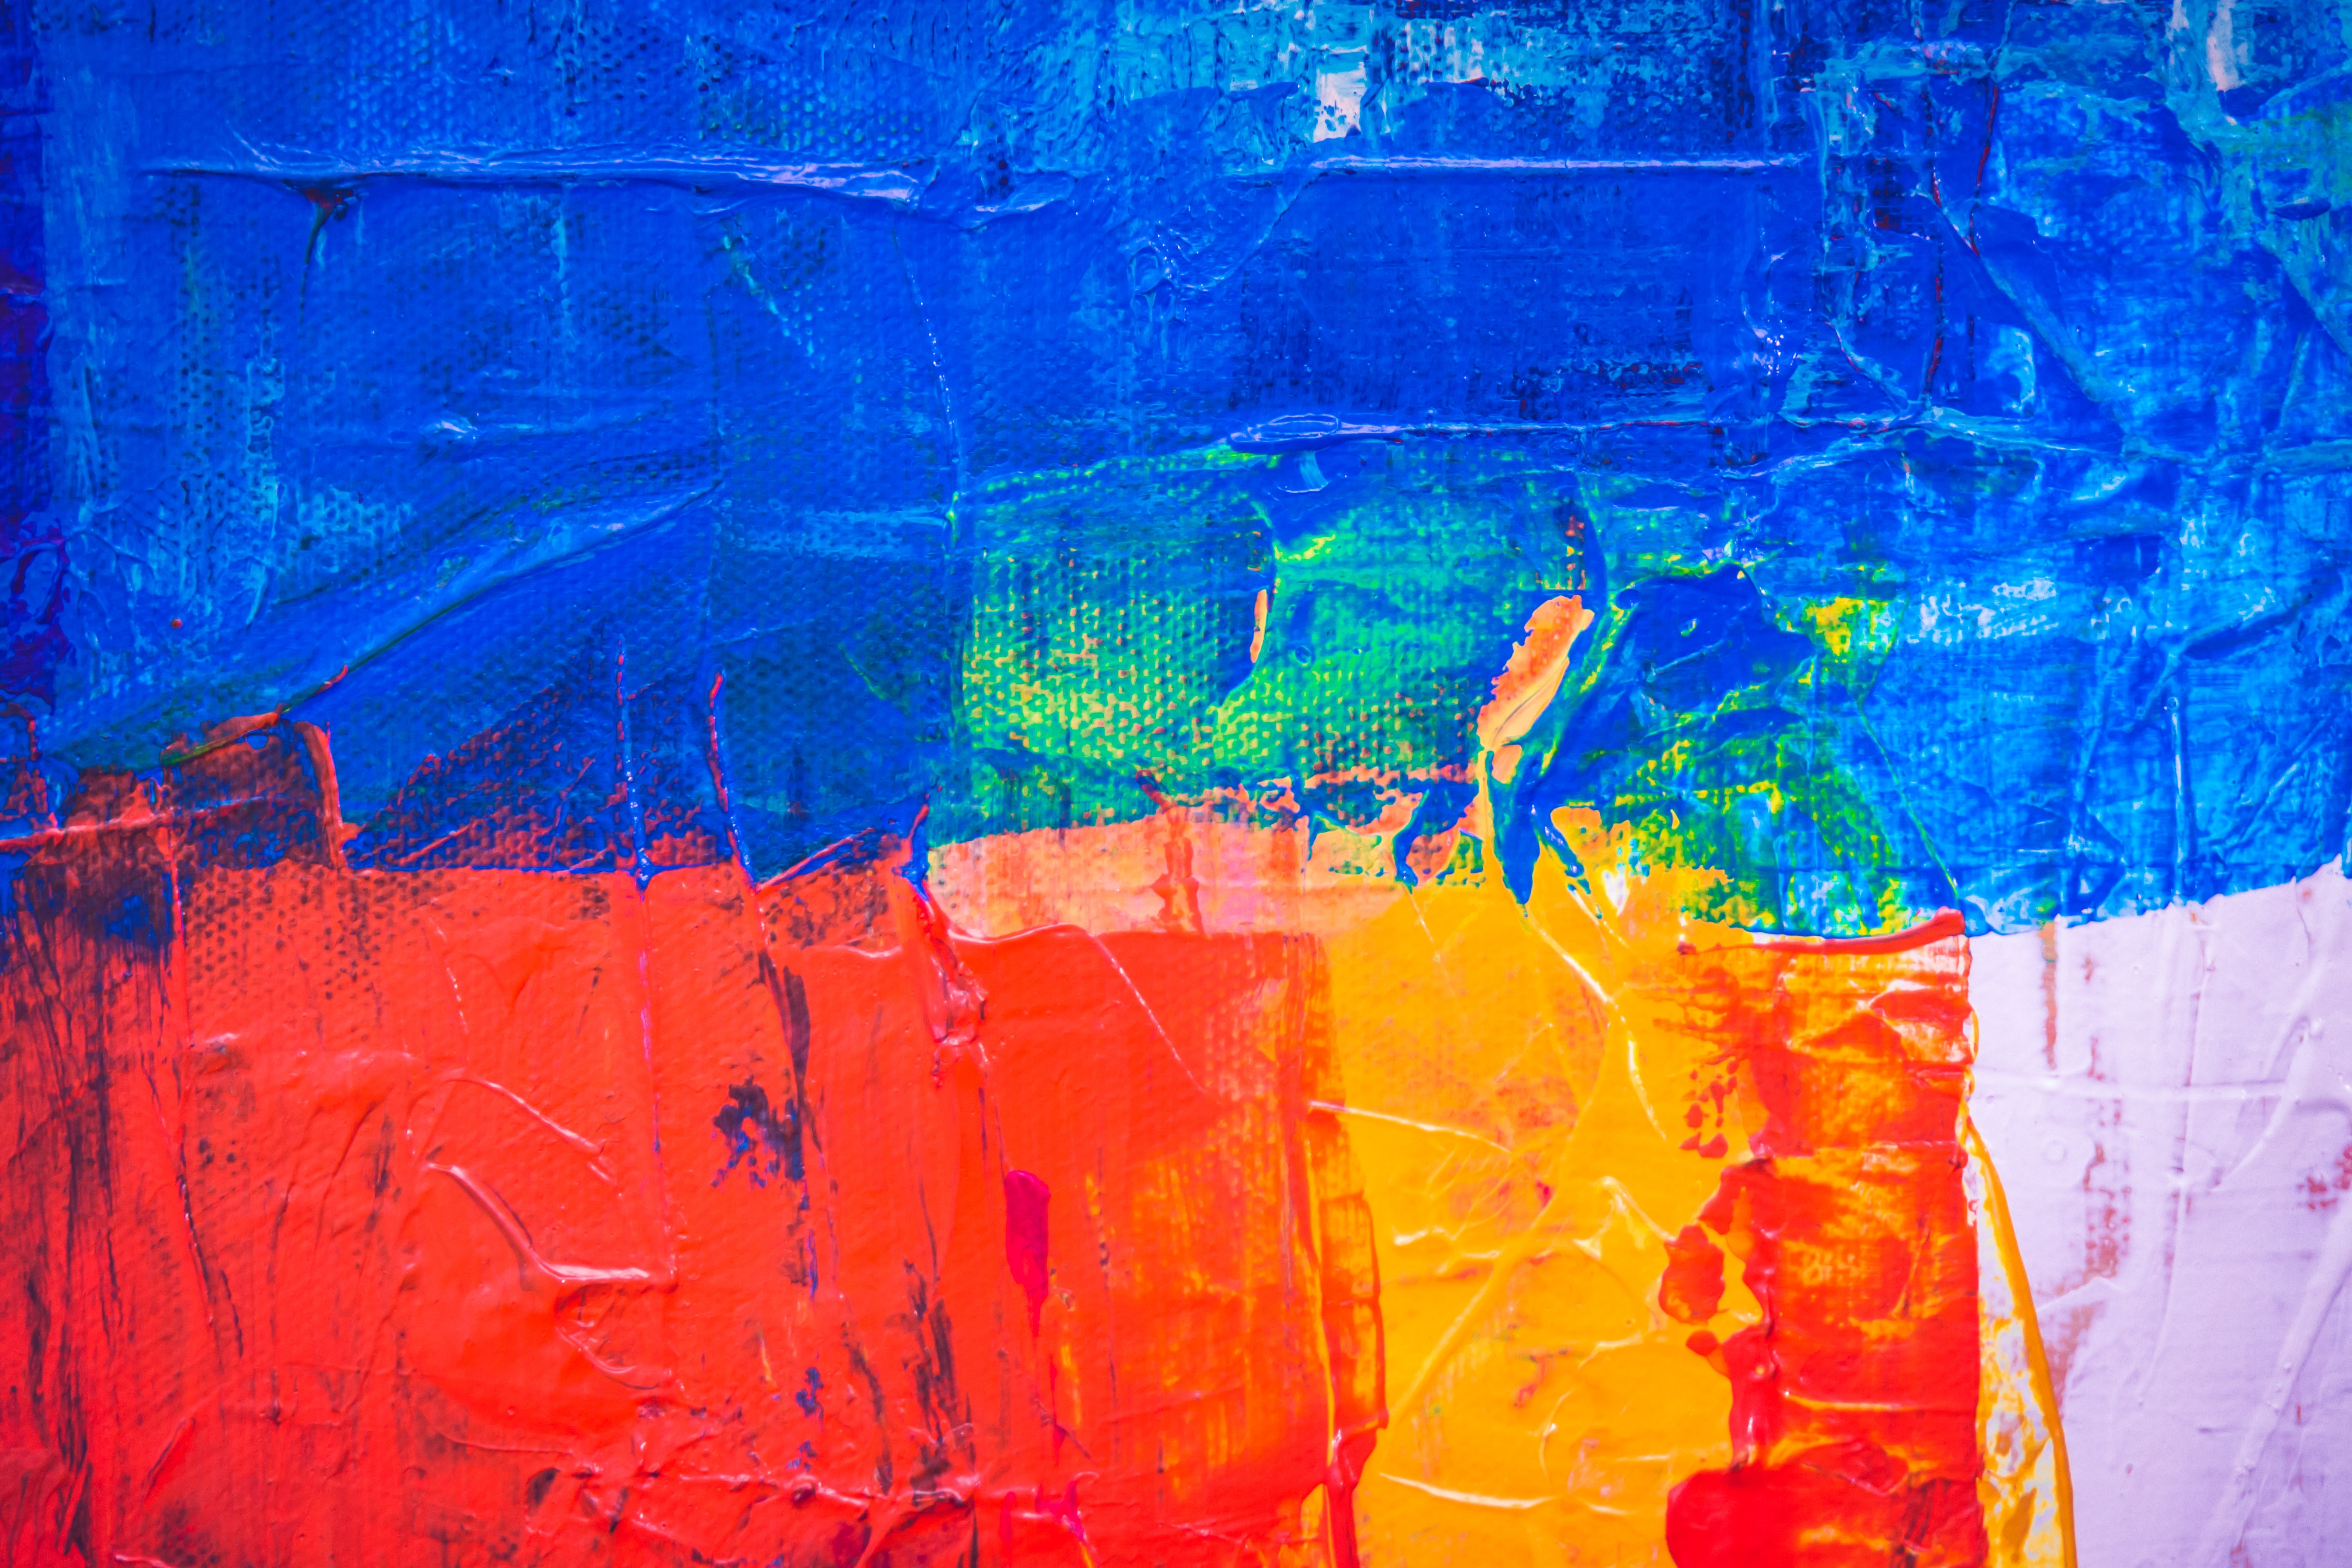 blue, red, pink, and yellow abstract painting